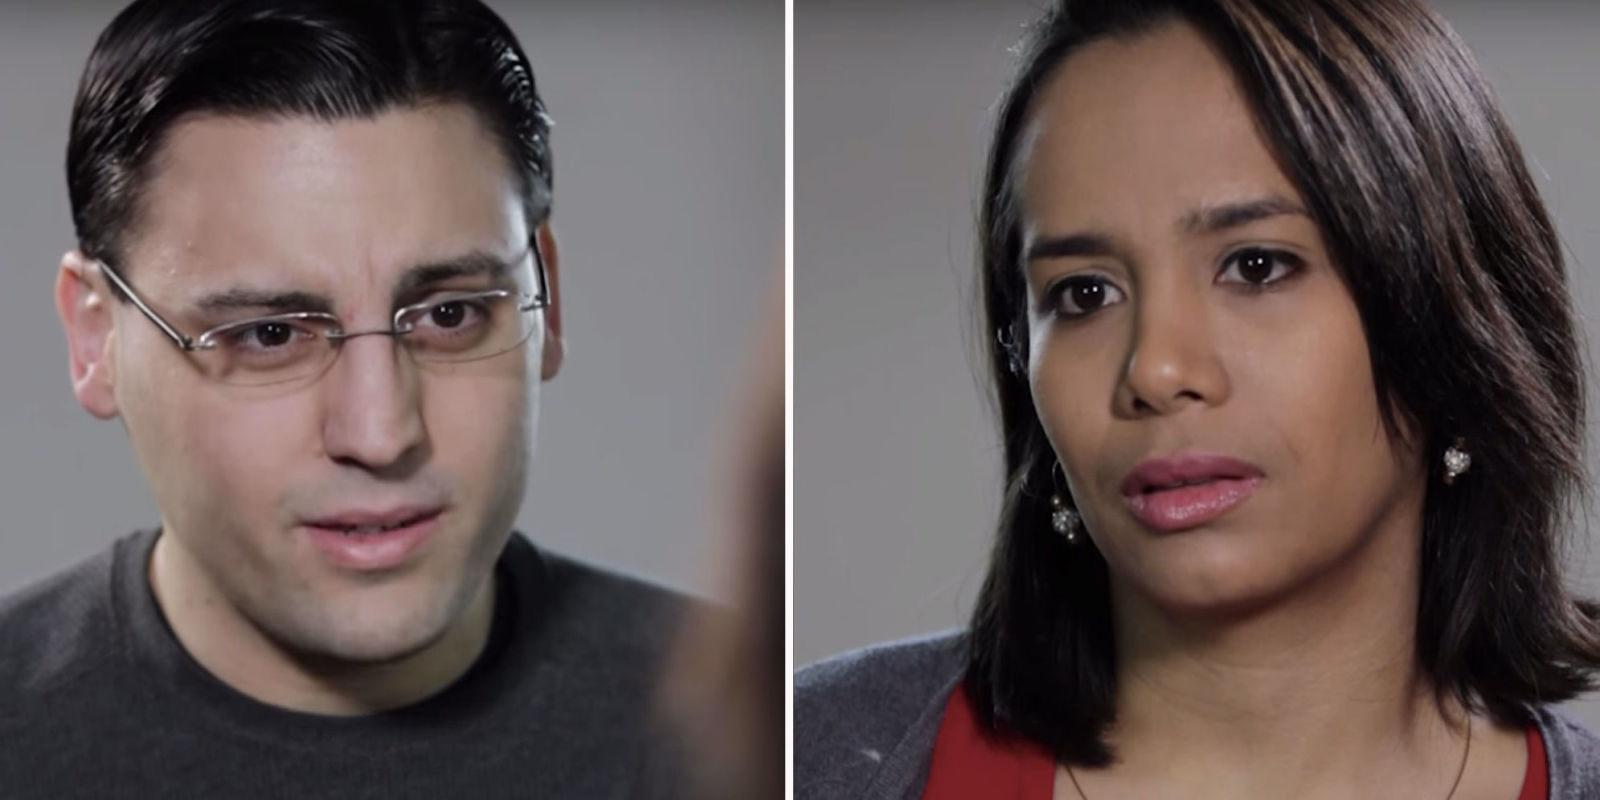 Watch a Married Couple Confront Each Other About Their Other Sexual Partners